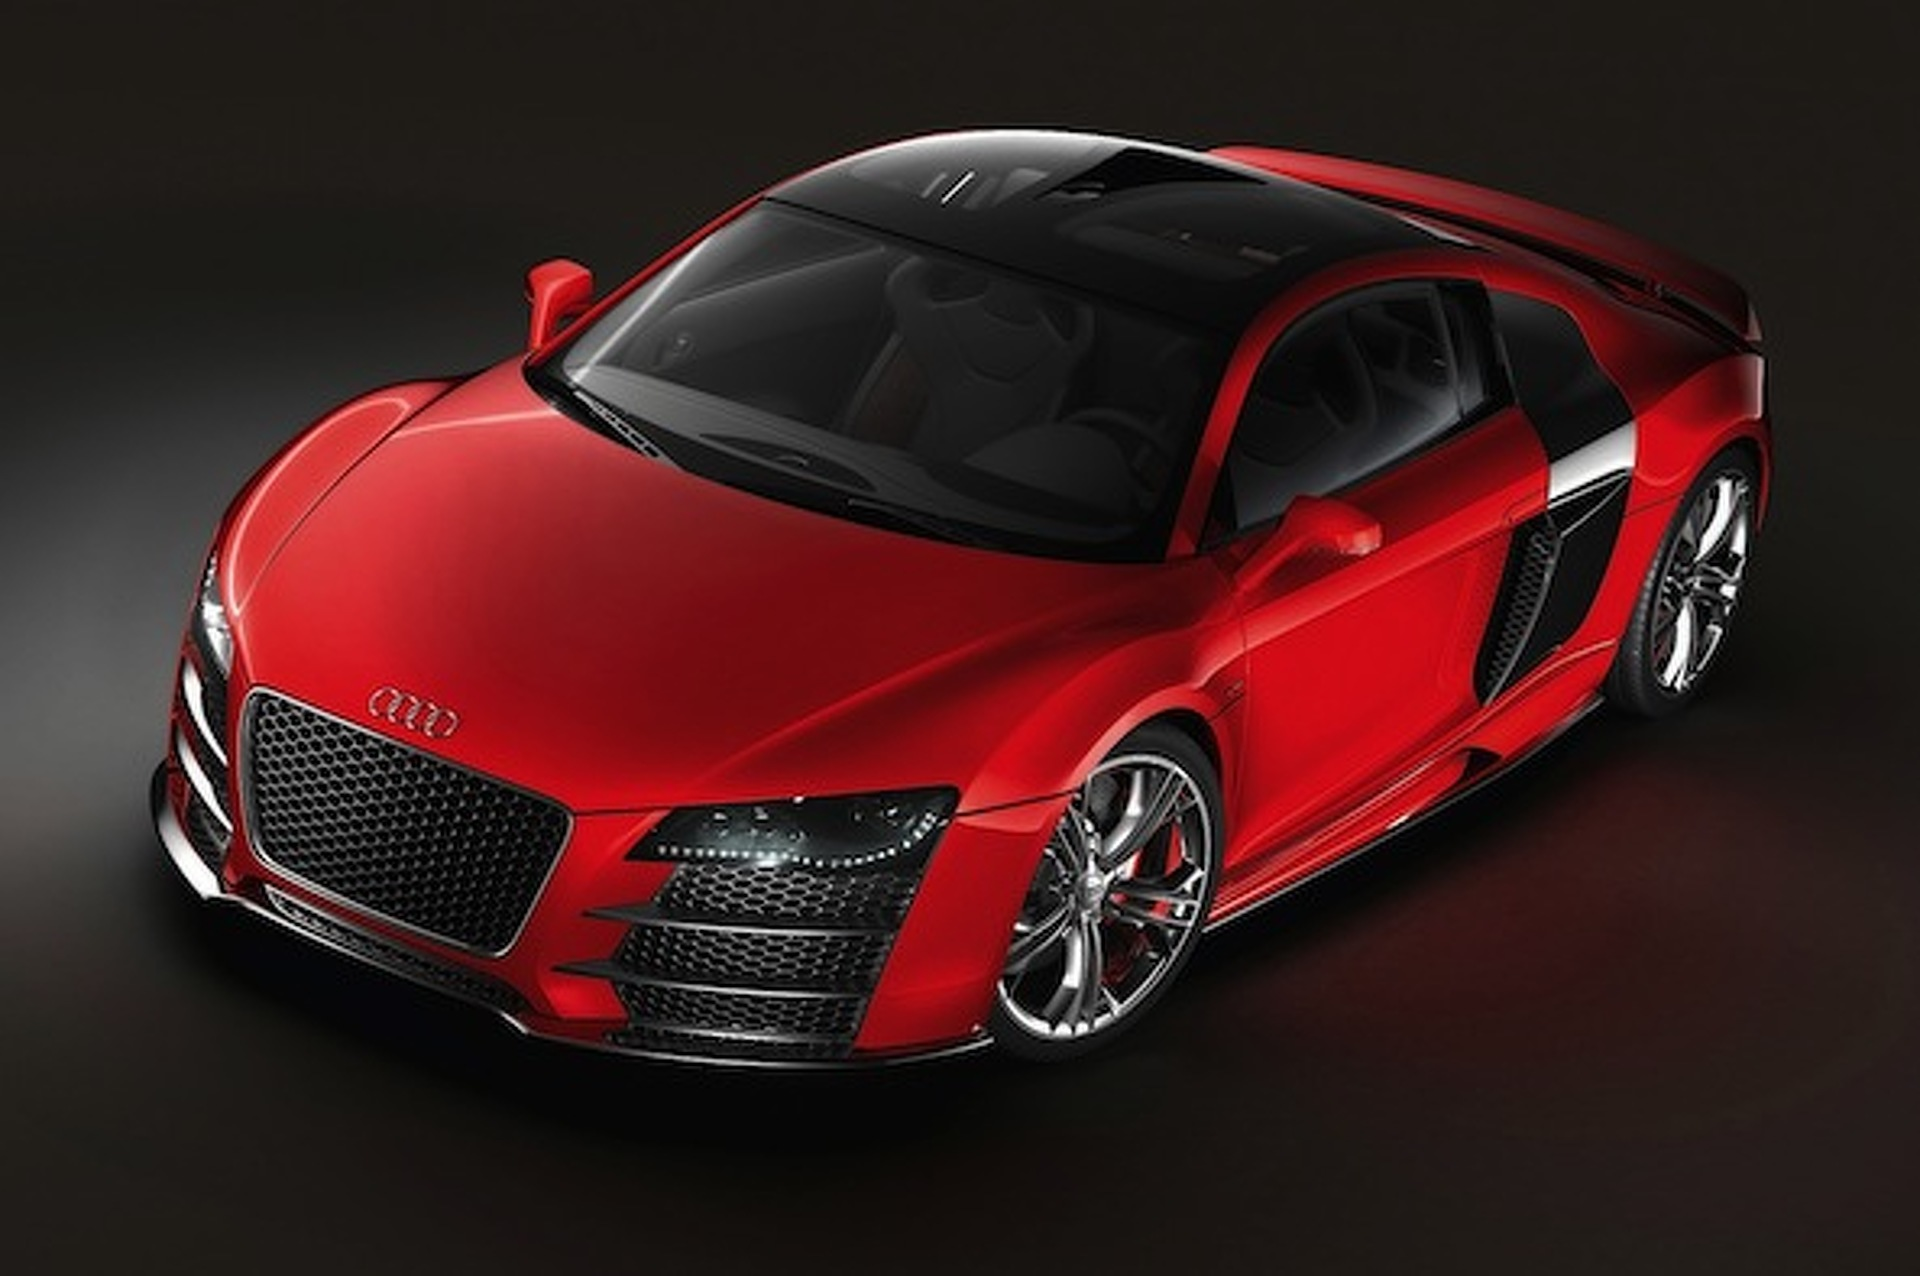 Wheels Wallpaper Audi R8 TDI Le Mans Concept Motor1com Photos 1920x1276